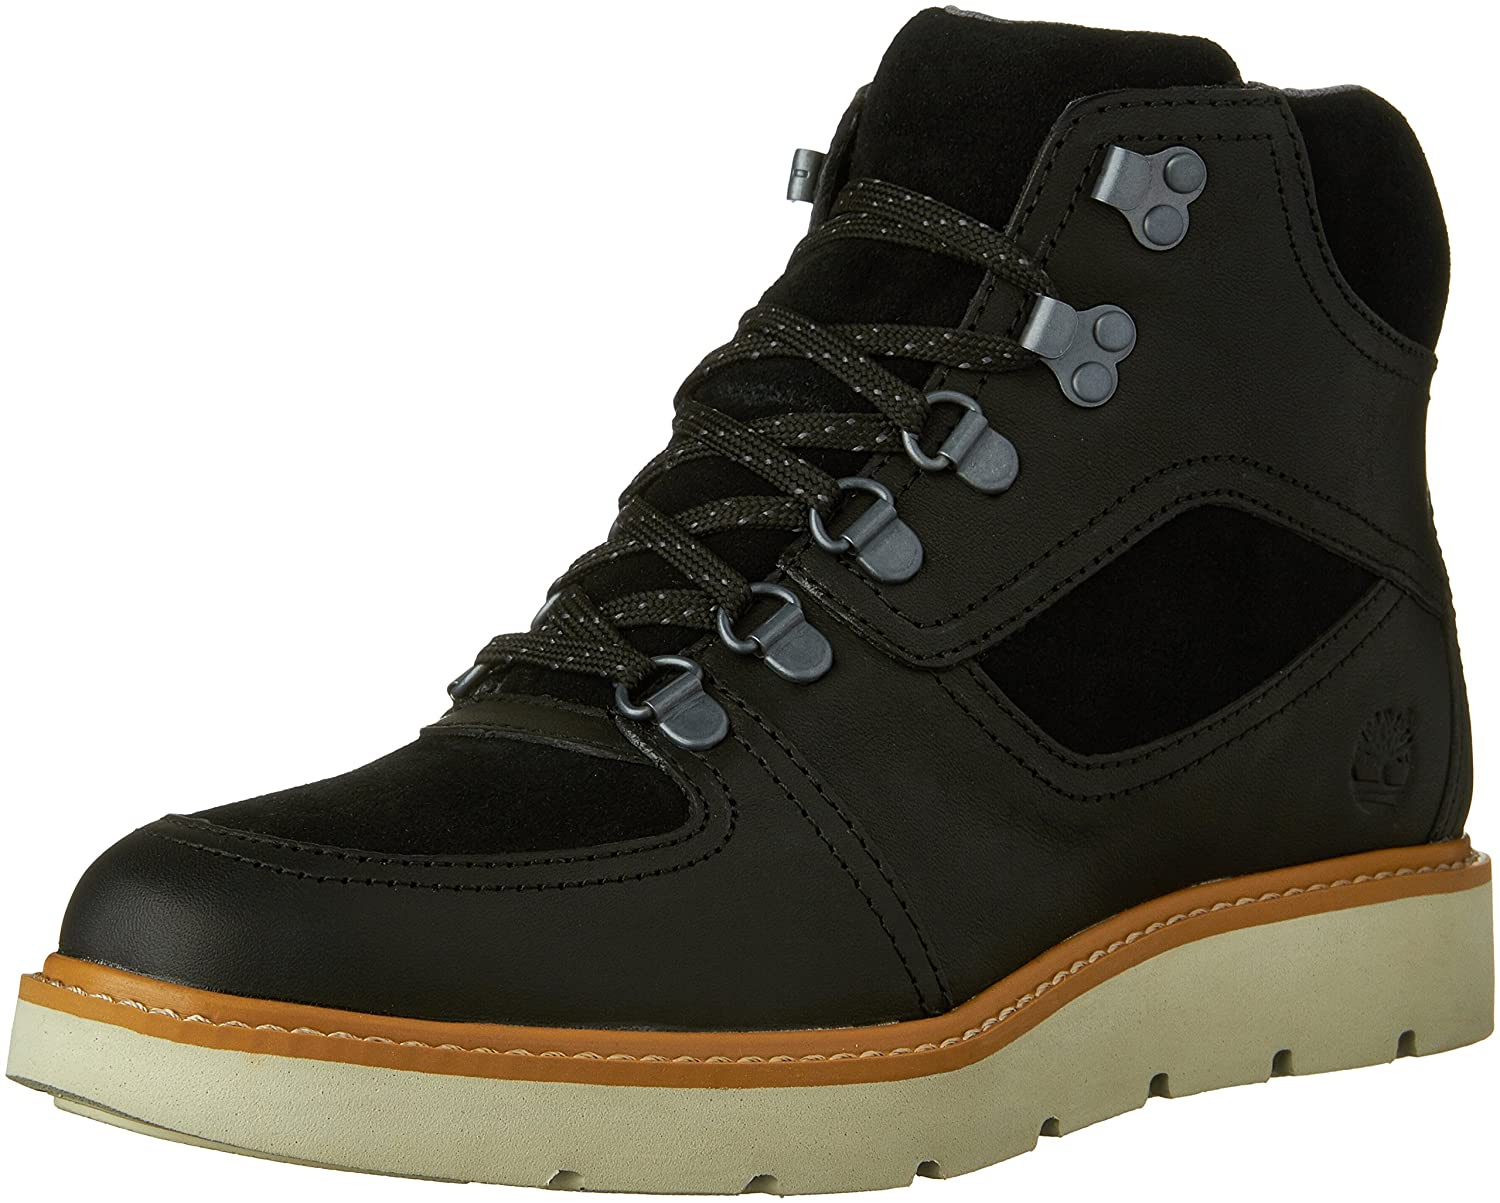 Timberland Women's Kenniston Hiker Hiking Boots US 9 The Timberland Company Kenniston Hiker-K